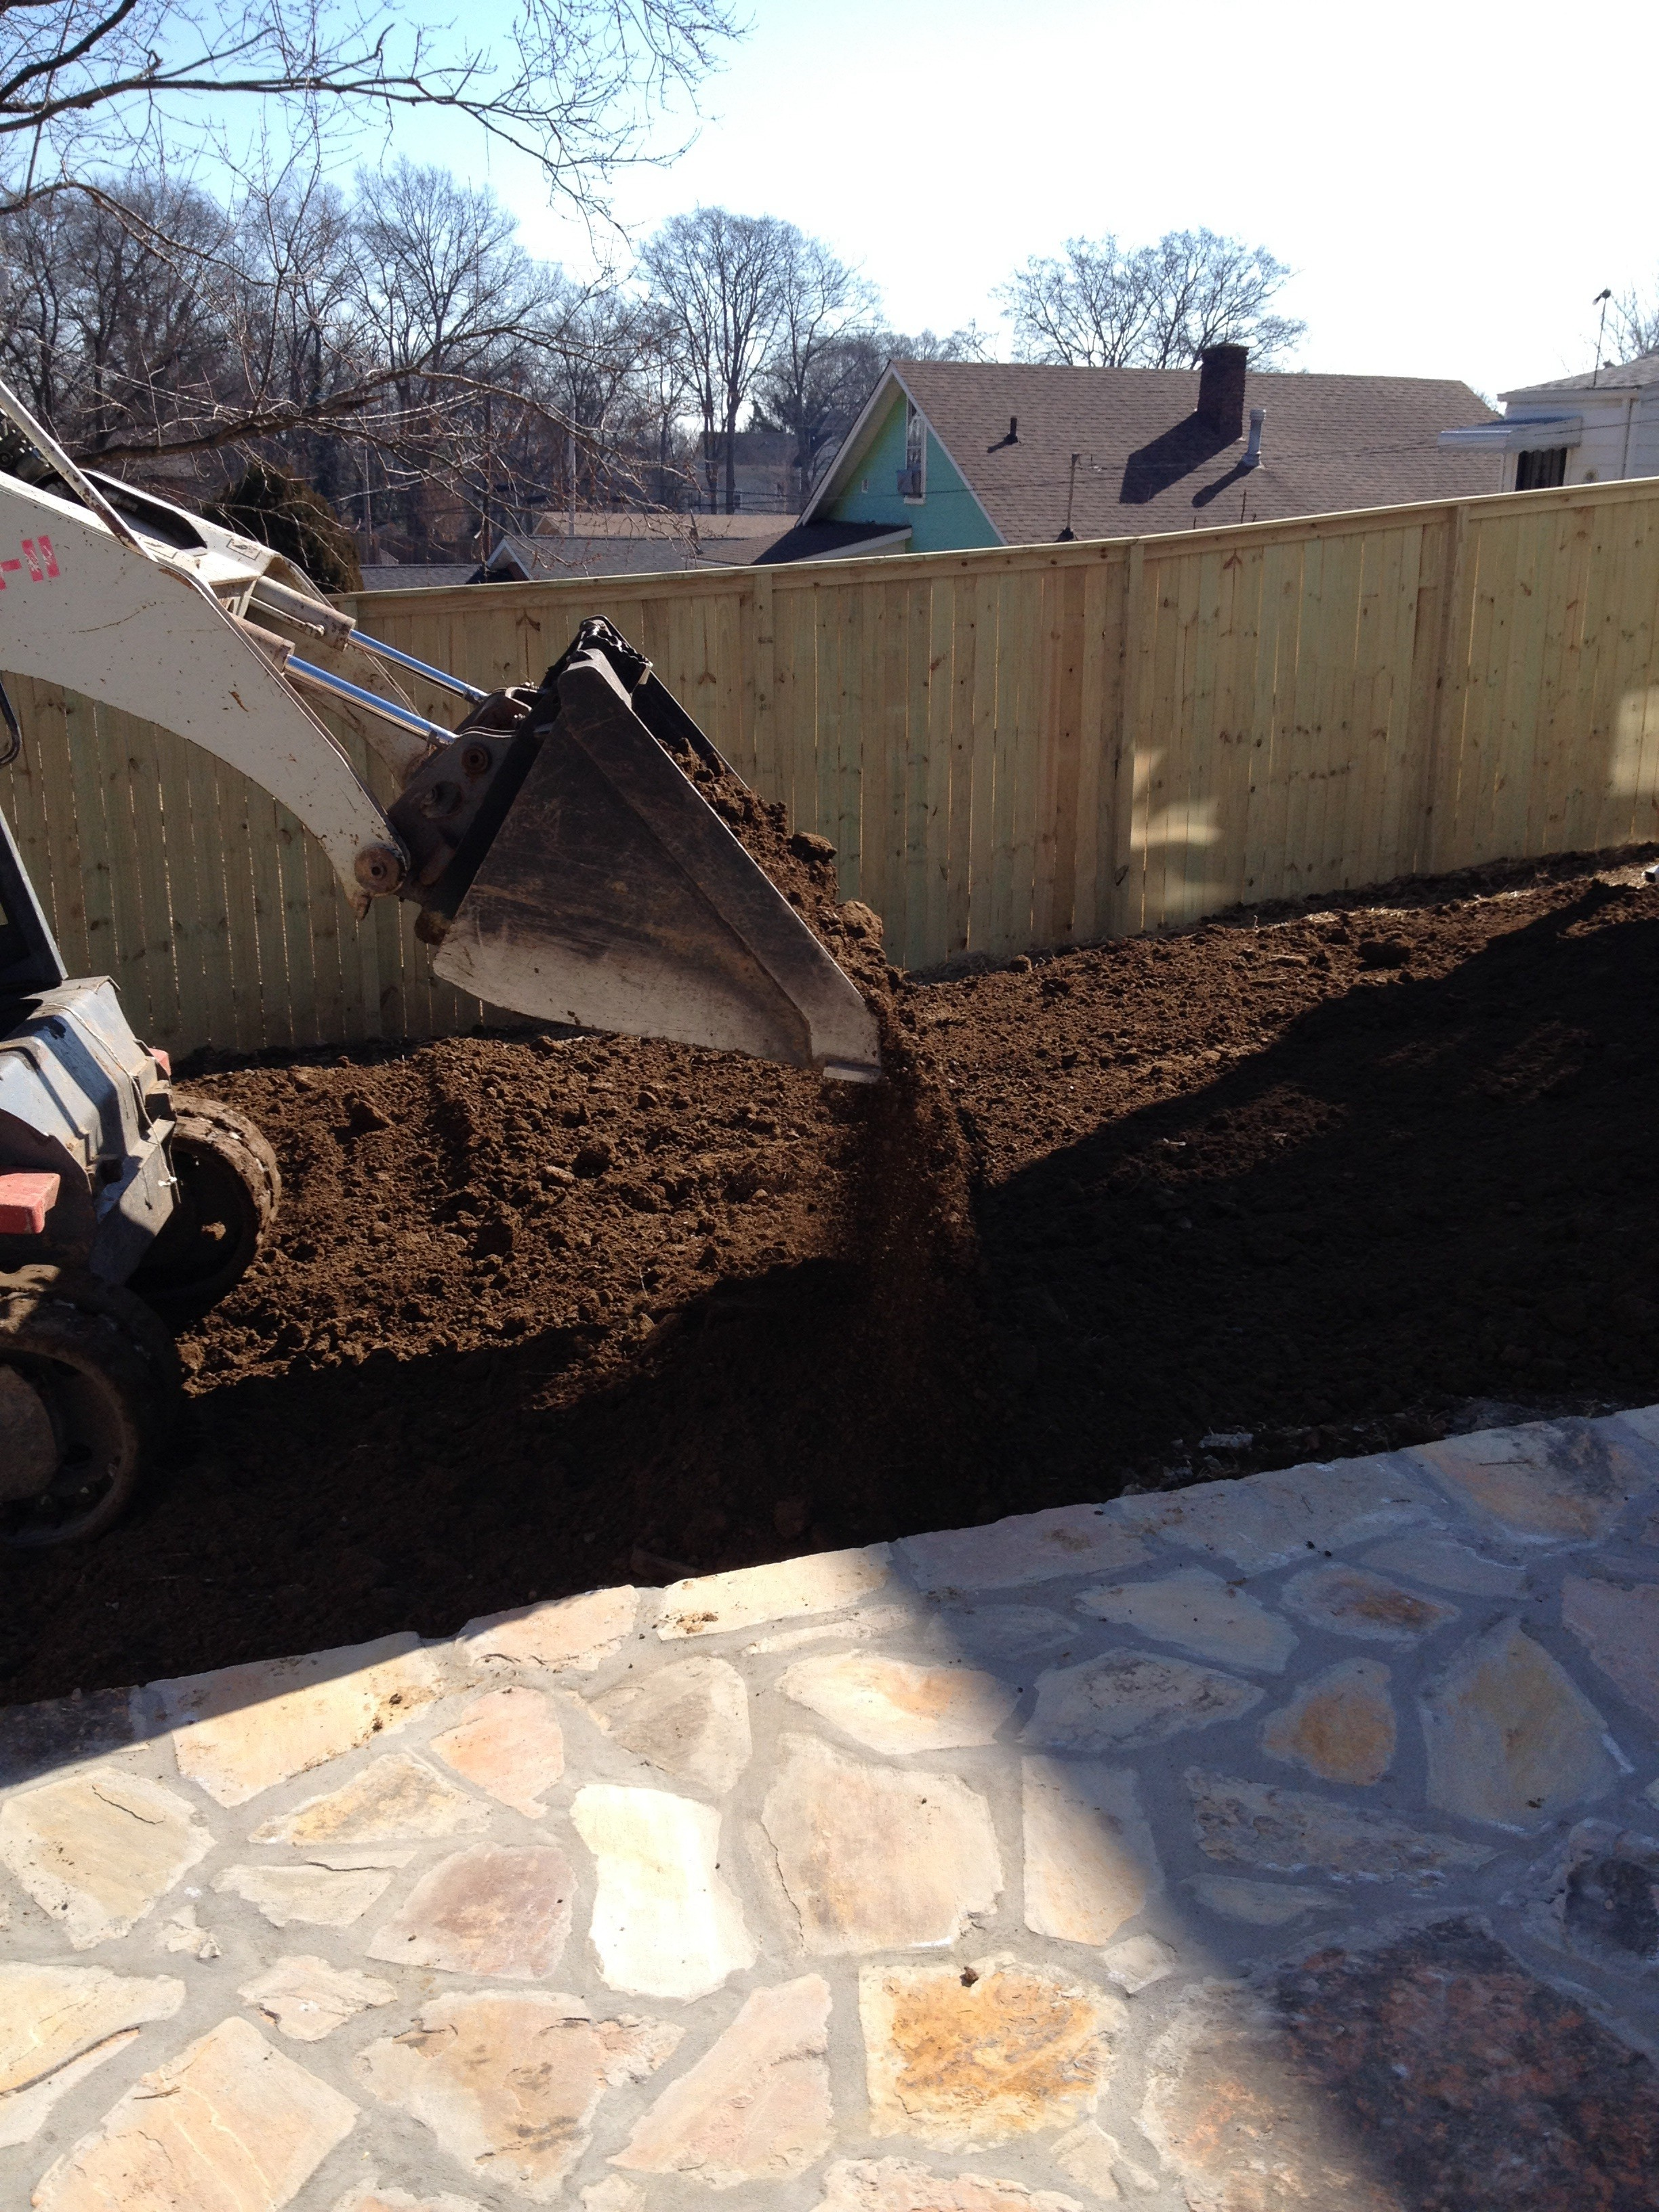 Buy Topsoil from Nashvillesoil.com in Nashville, Franklin, Brentwood, Spring Hill, Nolensville, Smyrna, and Murfreesboro Tennessee. Bulk topsoil screened and delivered. Thank you for your purchase.